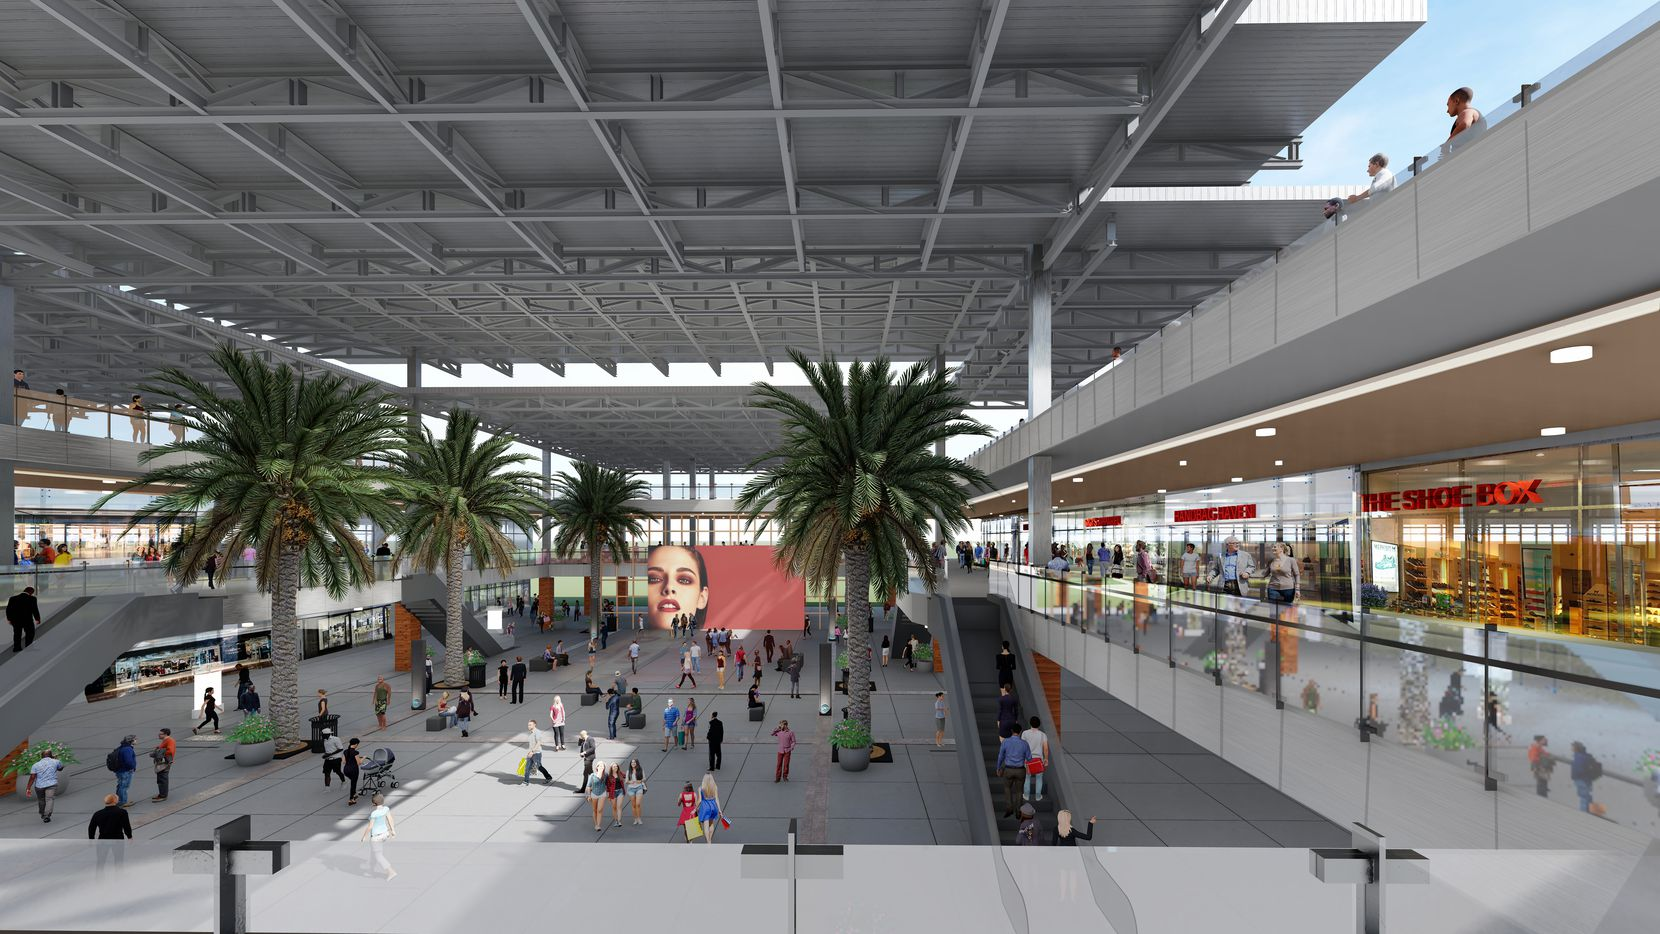 Parts of the old mall will be opened up and converted into a retail atrium.